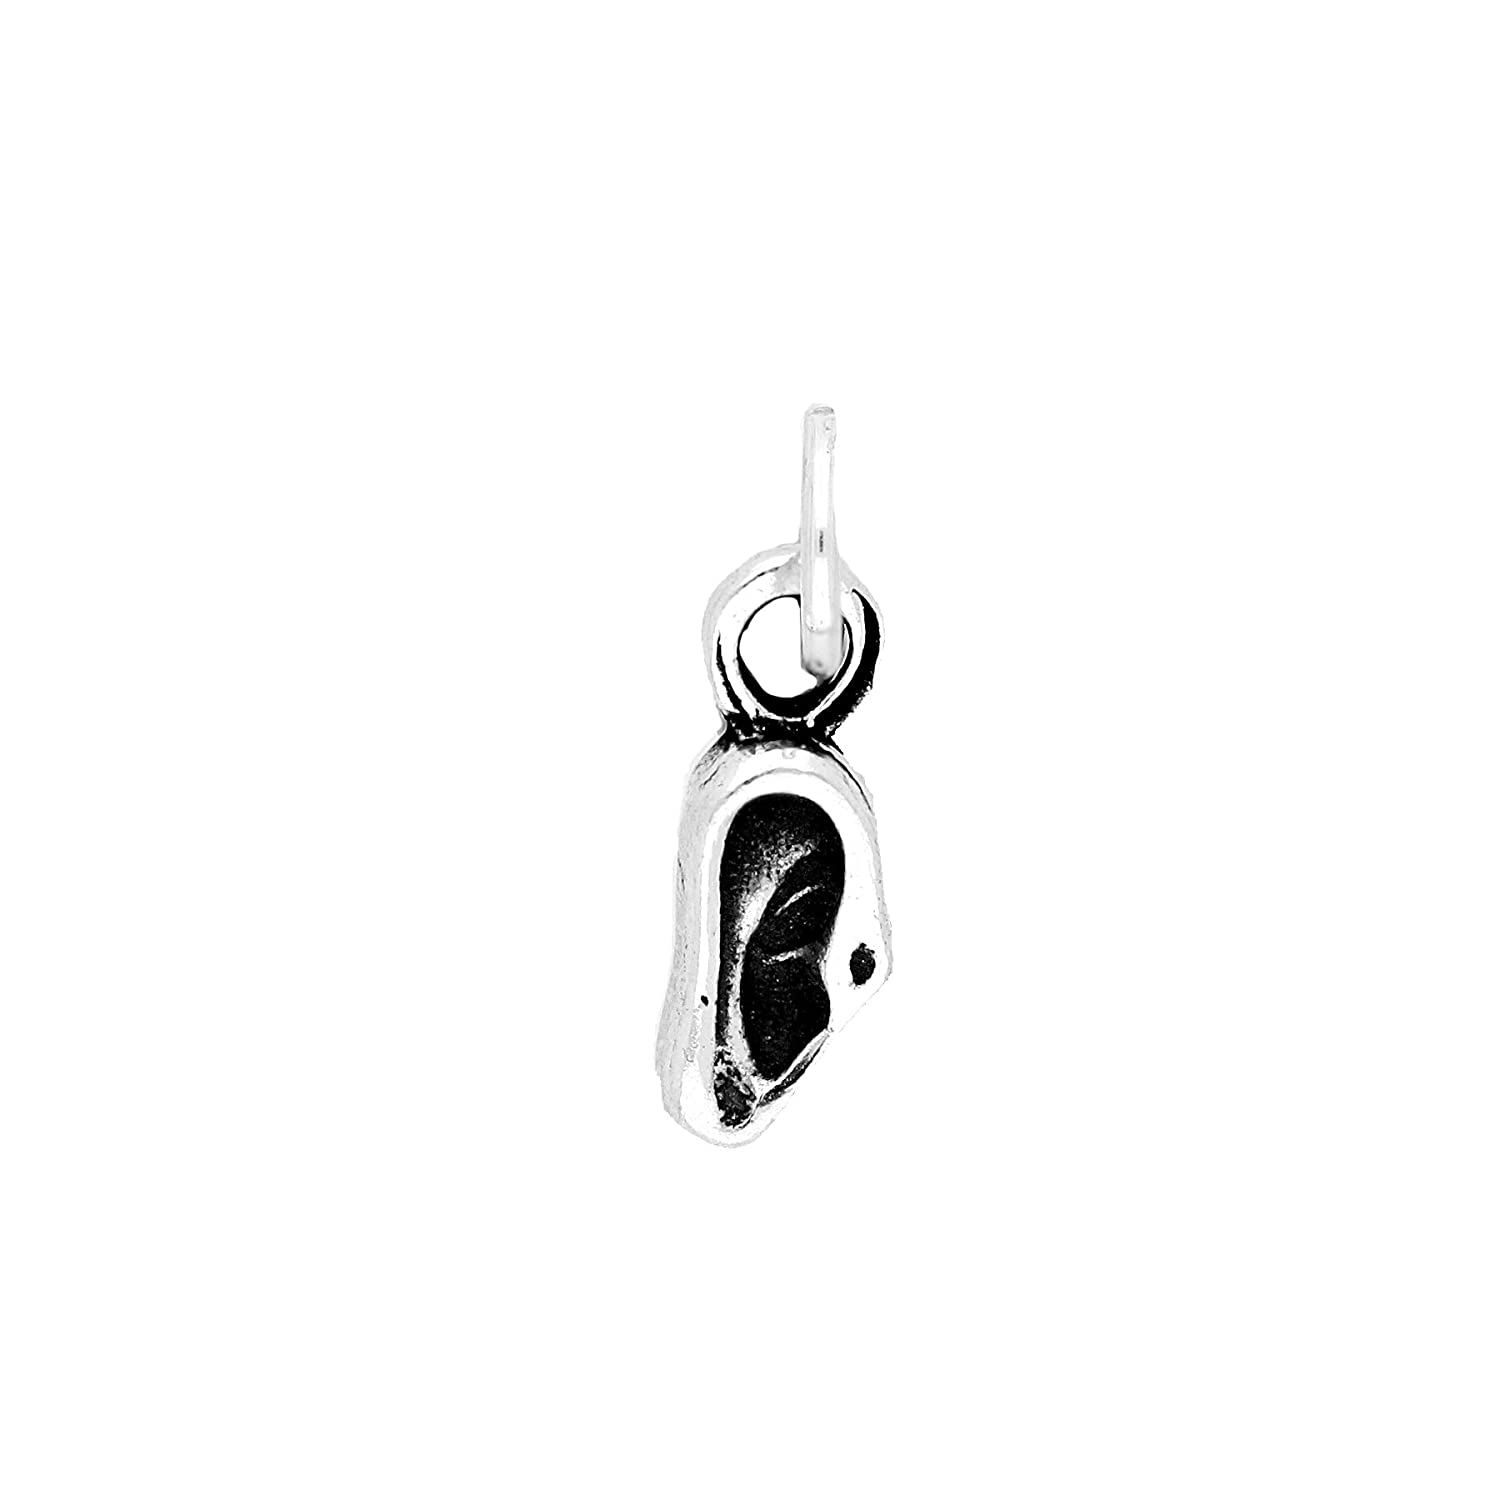 TheCharmWorks Sterling Silver Ear Charm